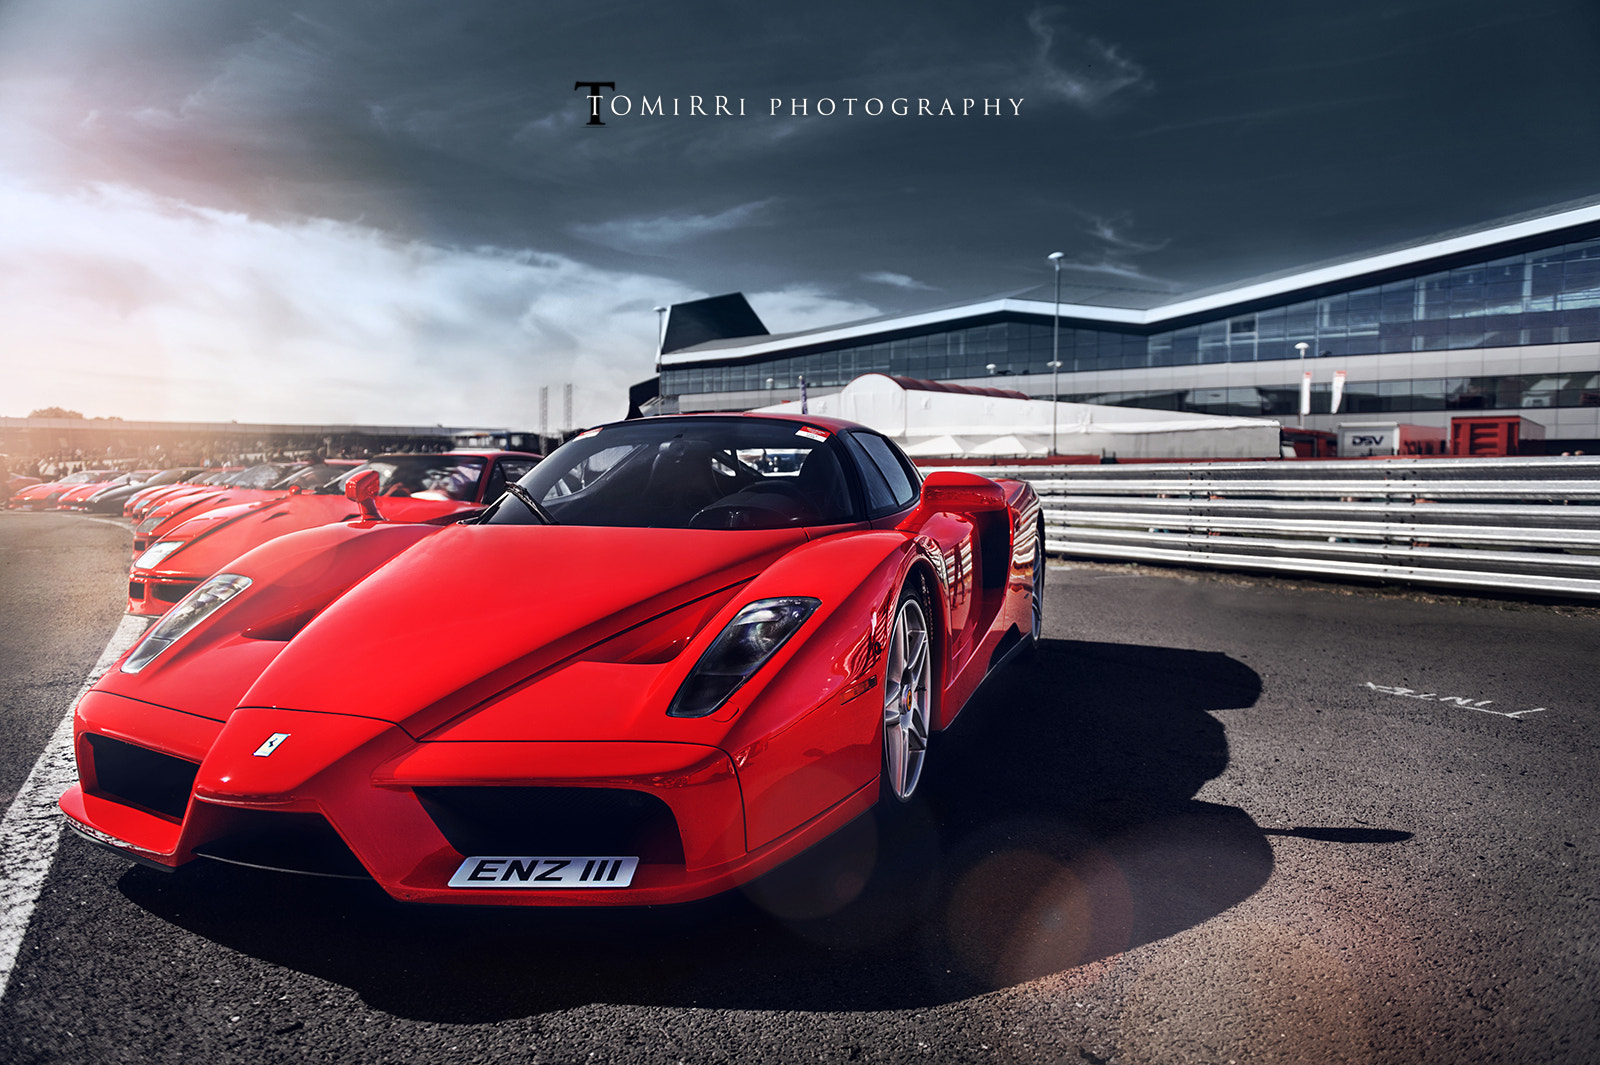 Photograph Ferrari Racing Days at Silverstone by TomirriPhotography  on 500px